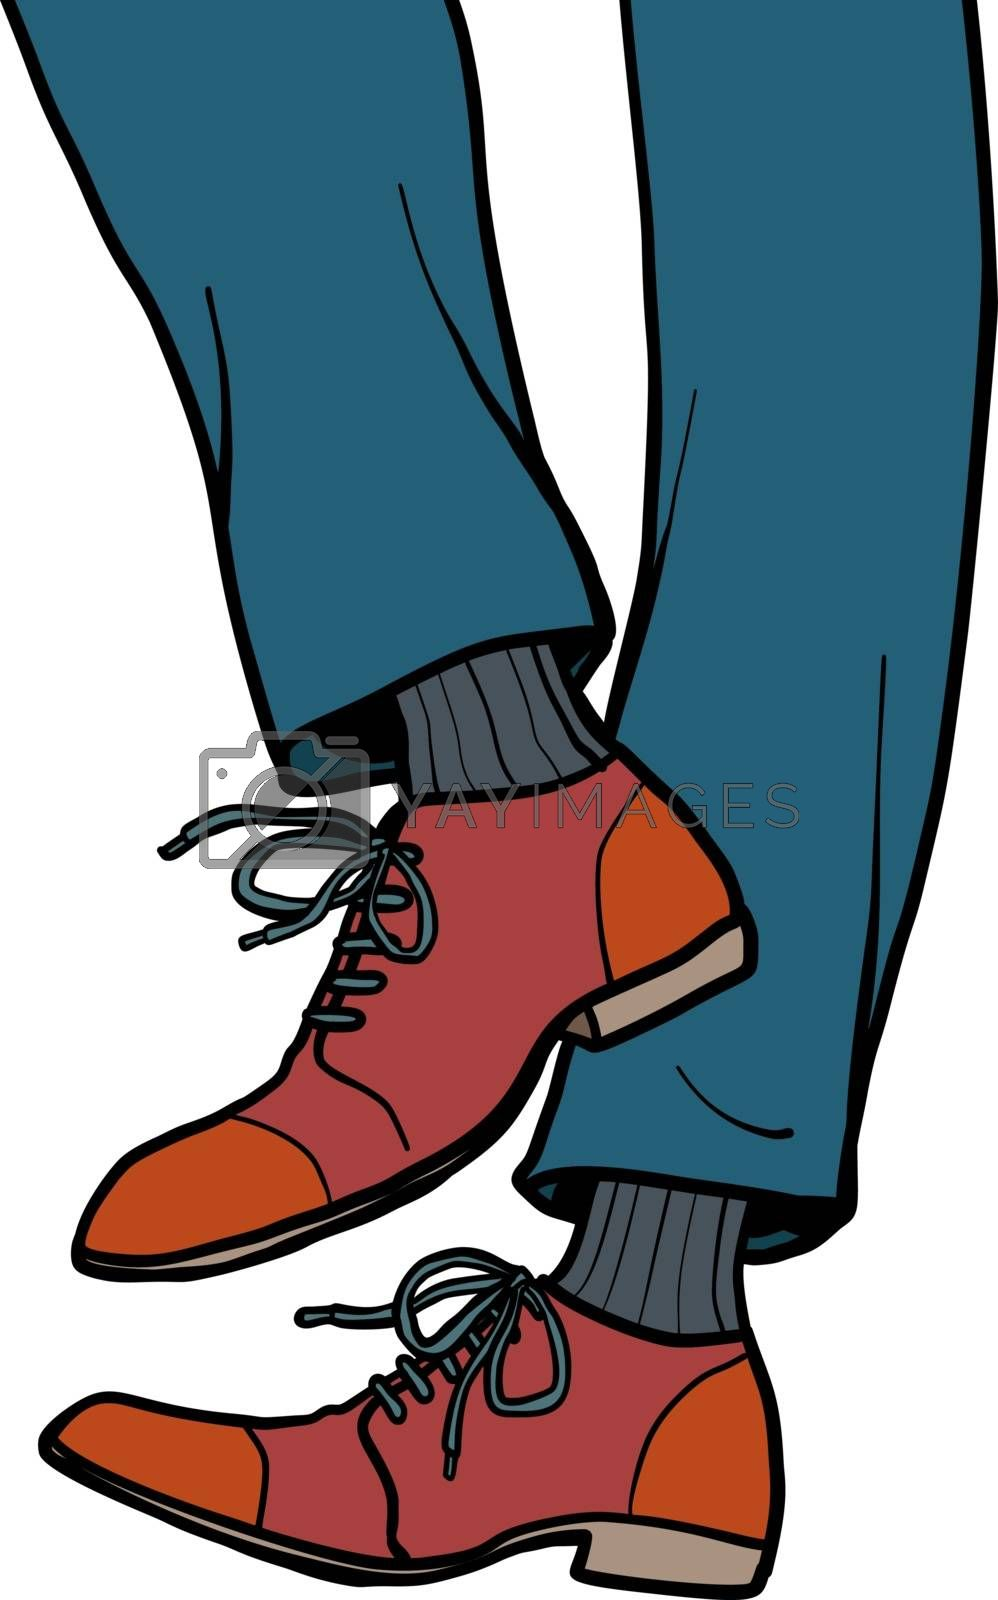 male legs walk. close-up of body part. Comic cartoon pop art retro vector illustration drawing